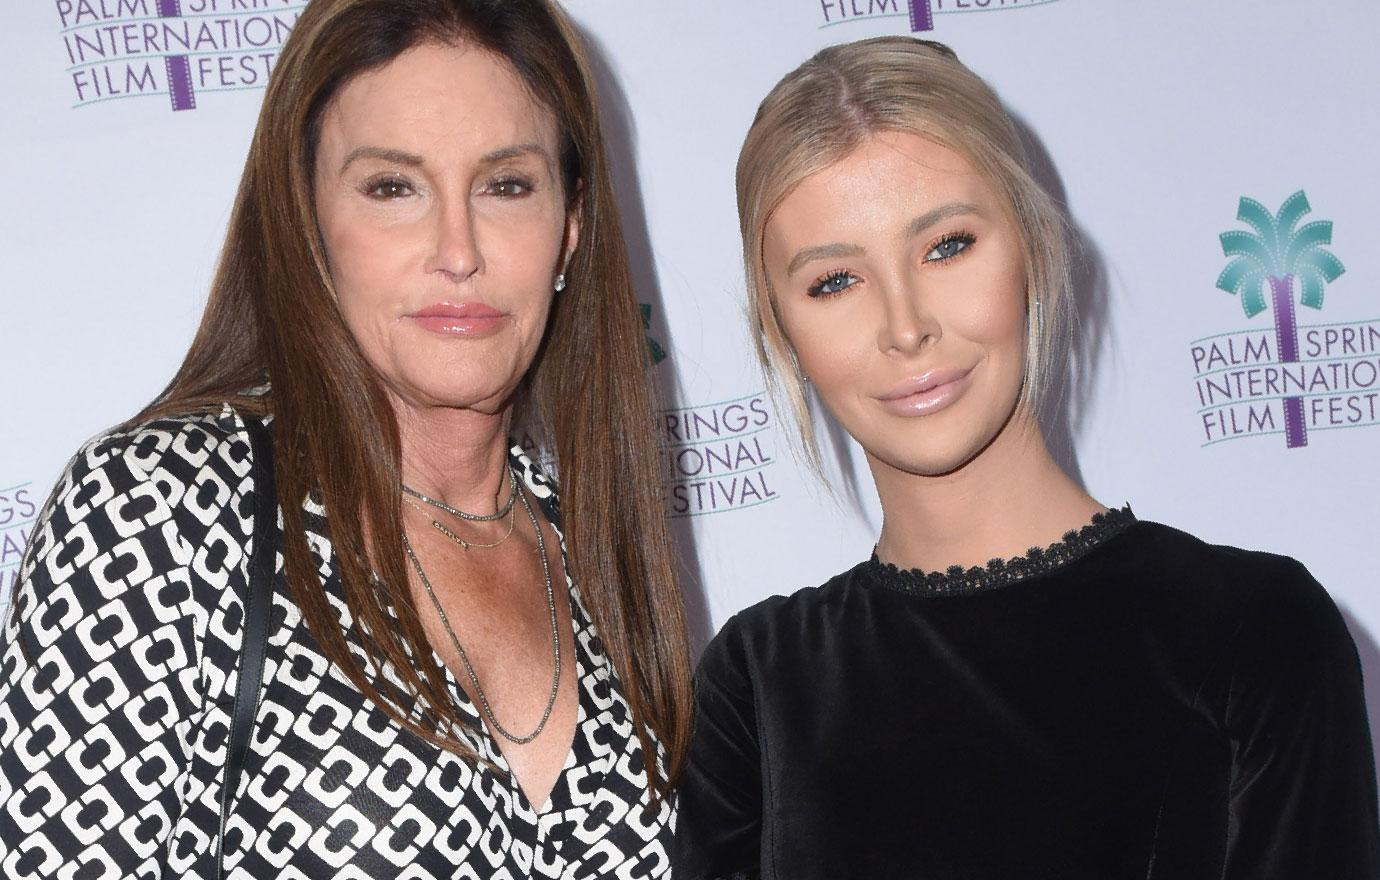 Caitlyn Jenner And Sophia Attend Film Festival Amid Big Brother Talk